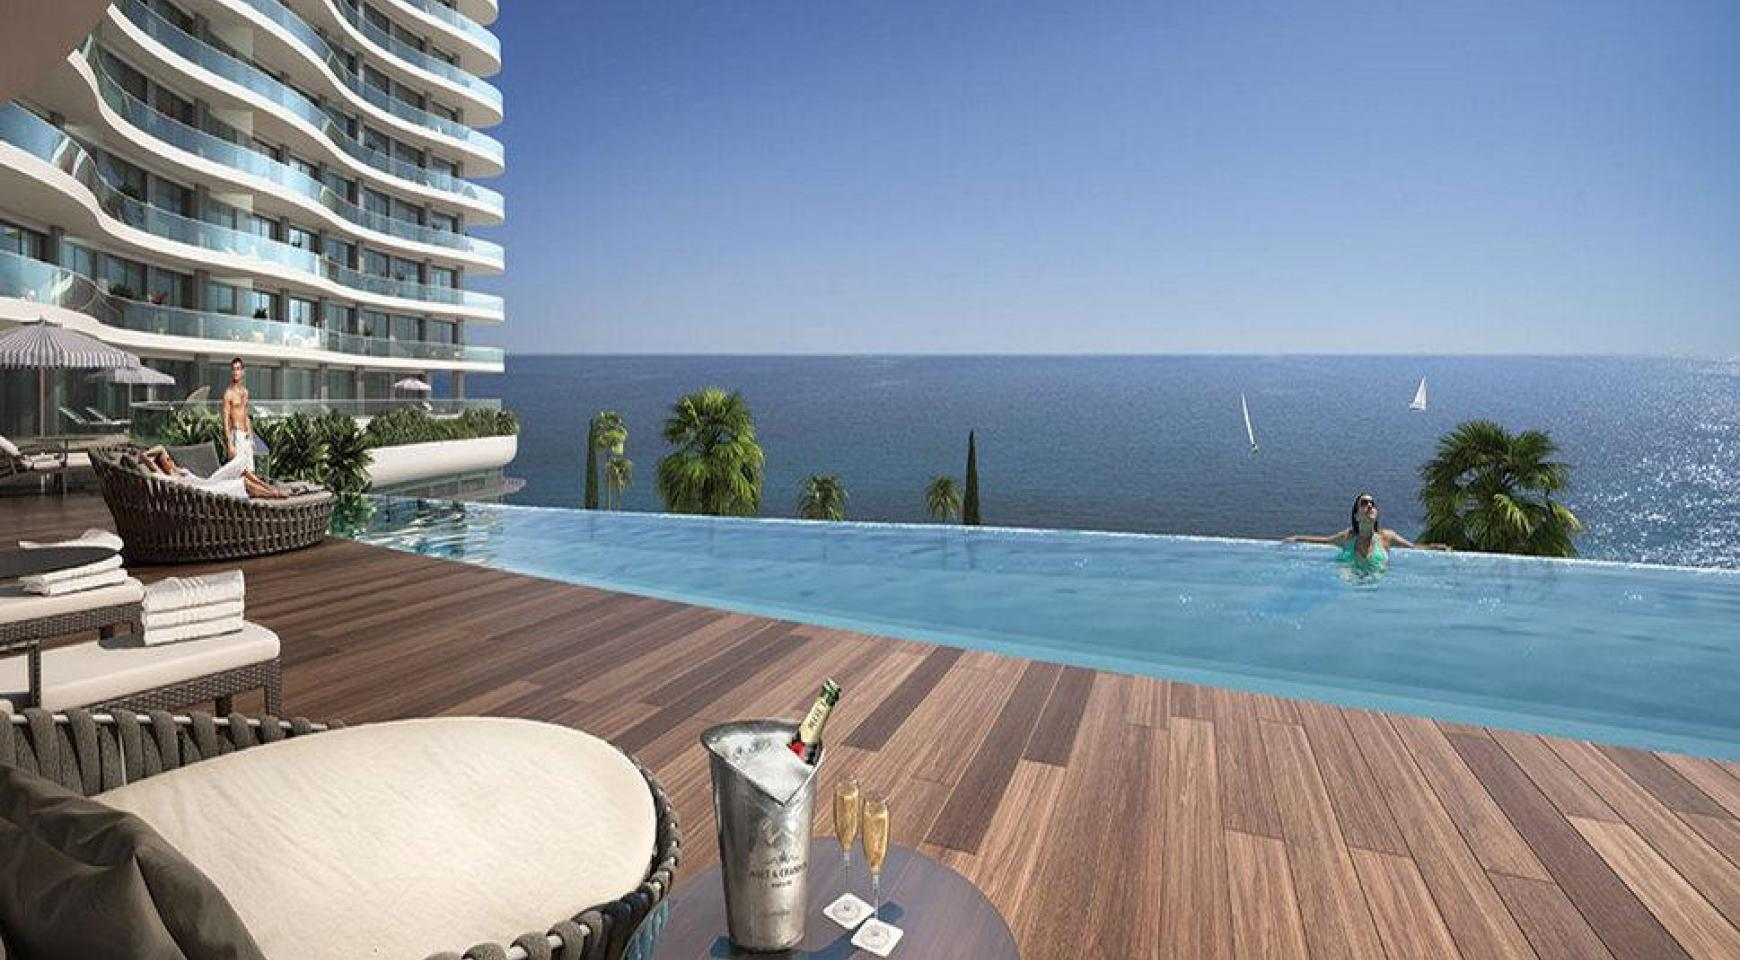 4 Bedroom Apartment in an Exclusive Seafront Project   - 4